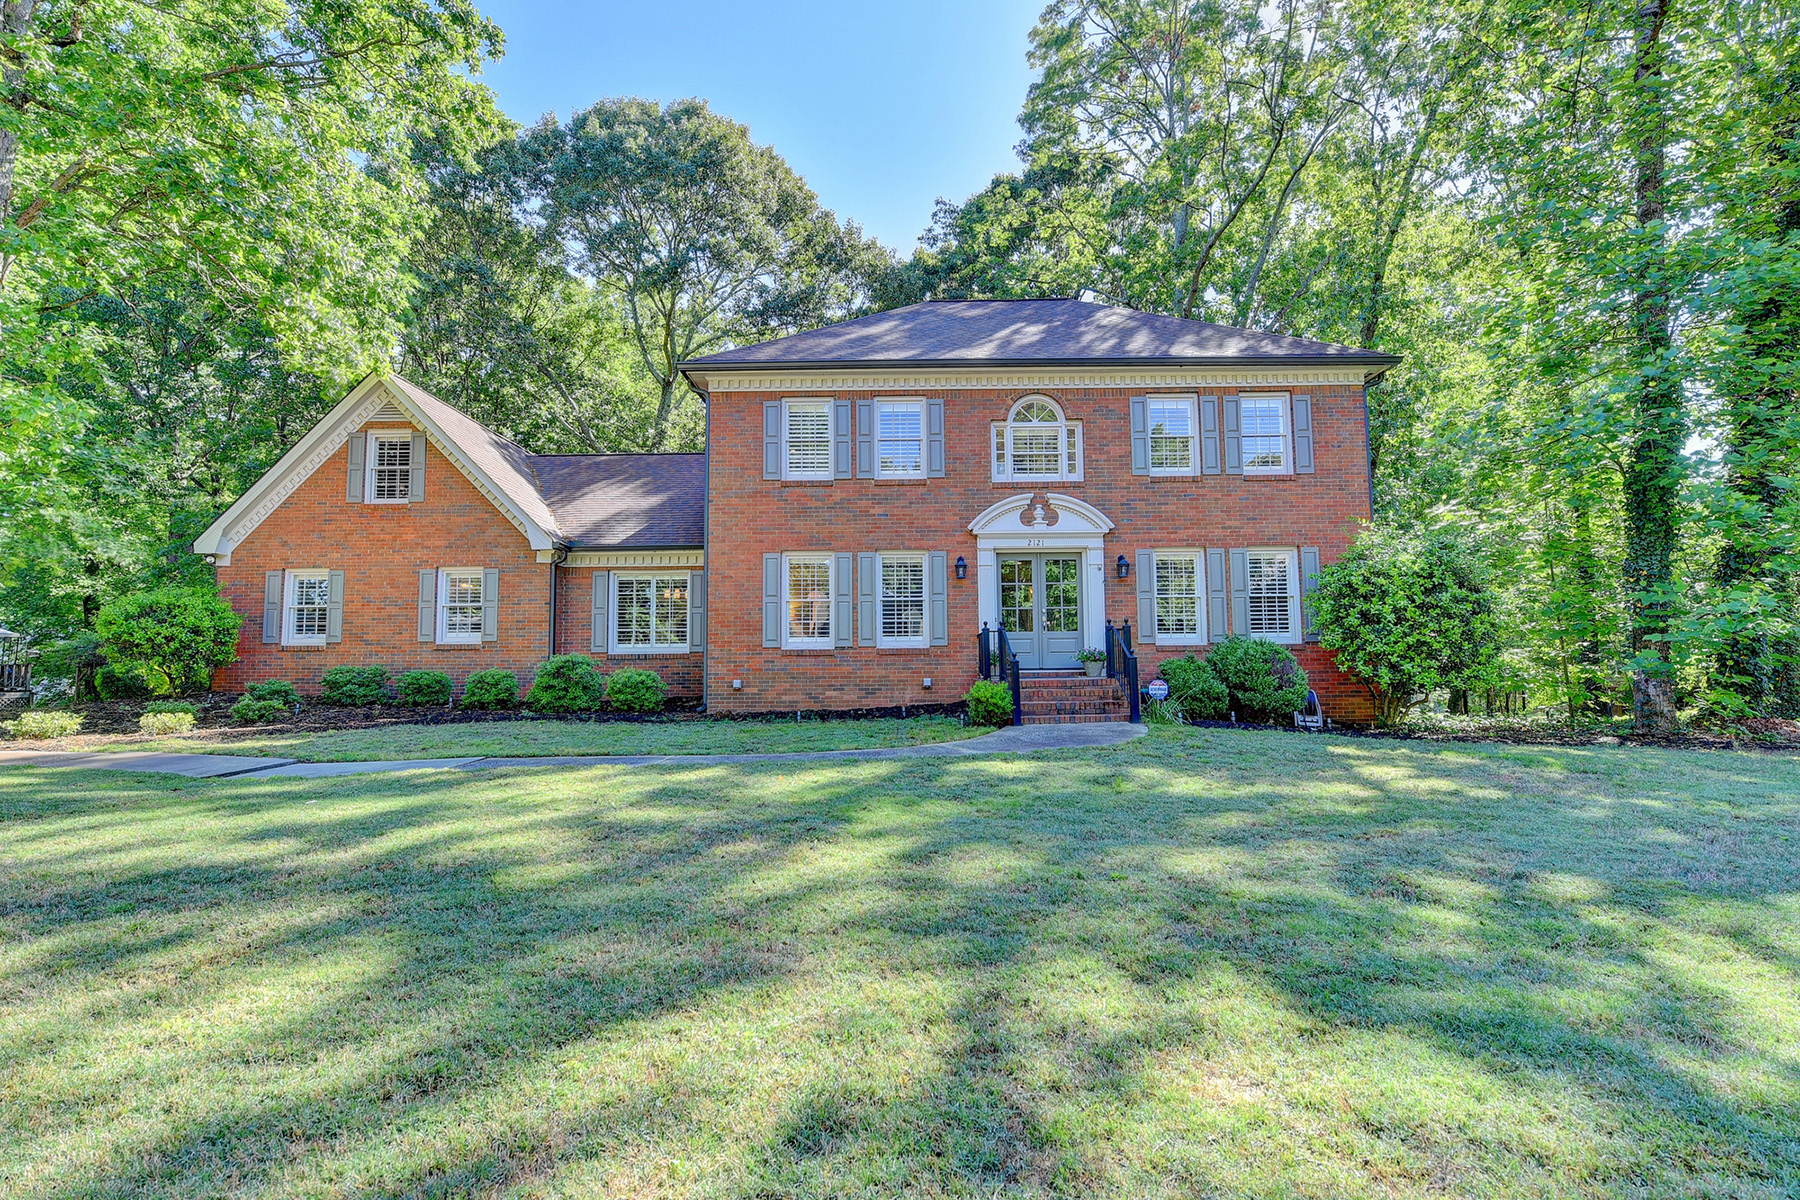 Single Family Homes for Sale at Move In Ready 2121 Monticello Place Lawrenceville, Georgia 30043 United States